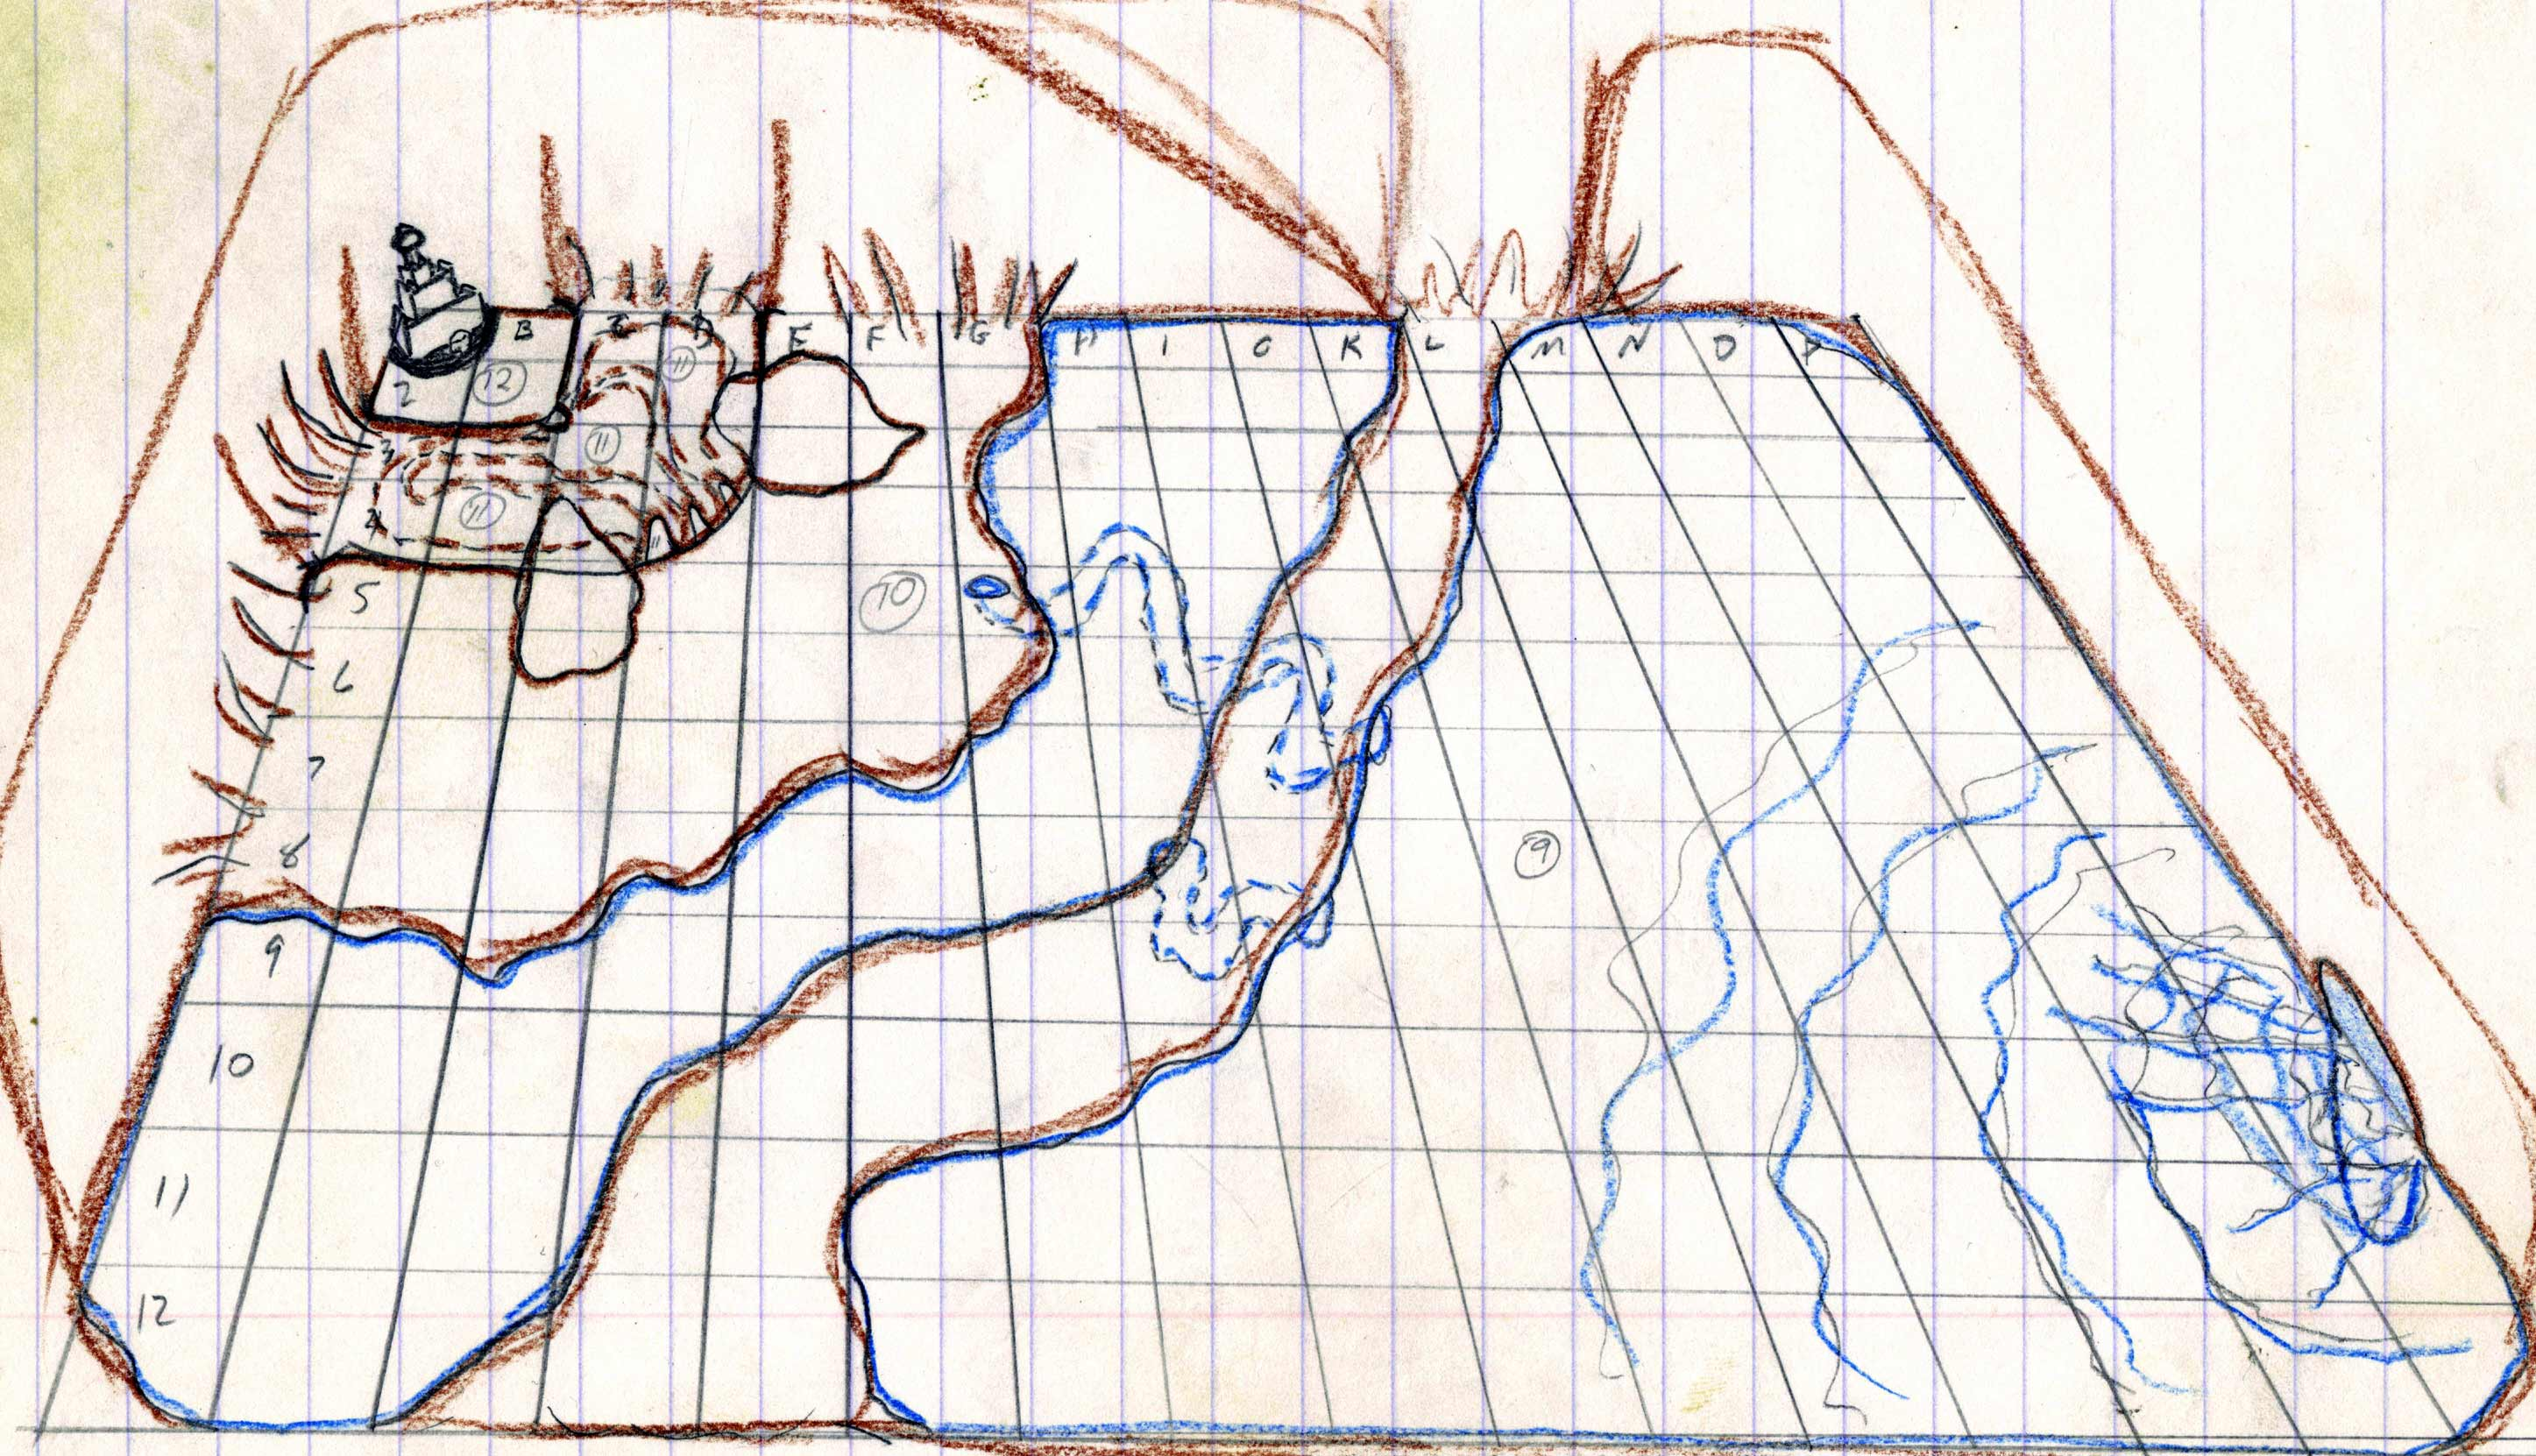 Realm of Defray.  This was the underground lair of the demon bent on destroying the castle of Lord Stone Grey.  I know it is very rough, especially for being done on notebook paper, but I have a revamp in the works.